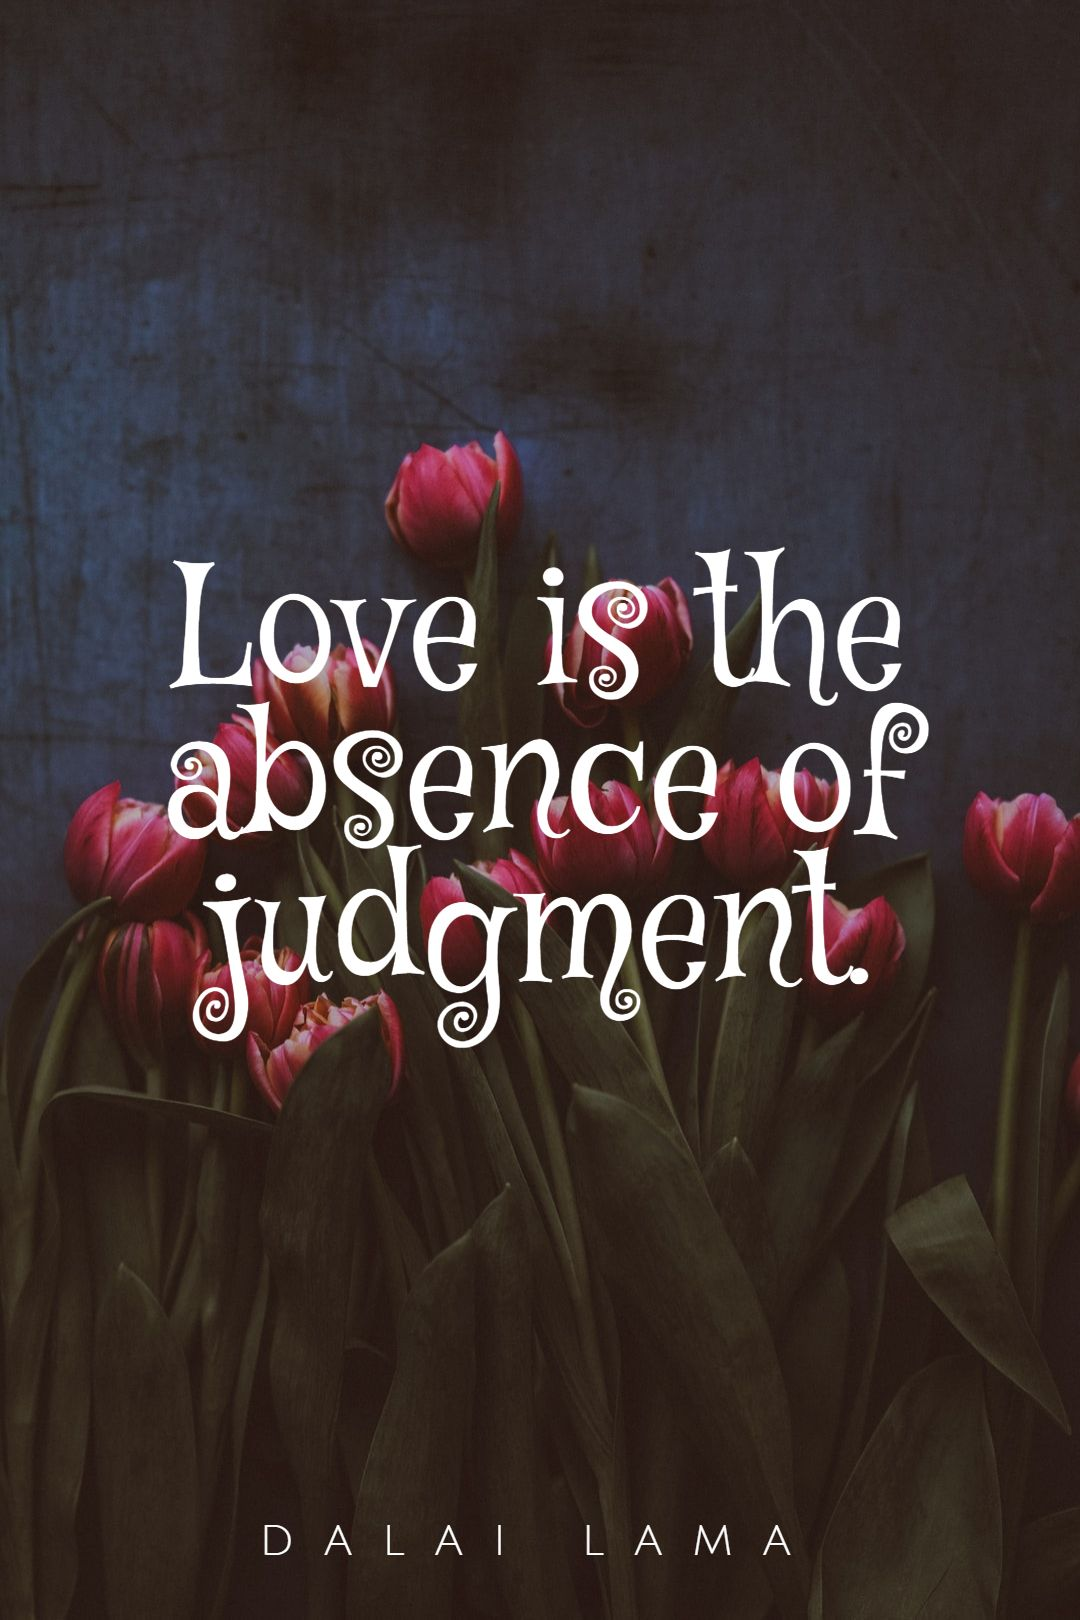 Quotes image of Love is the absence of judgment.